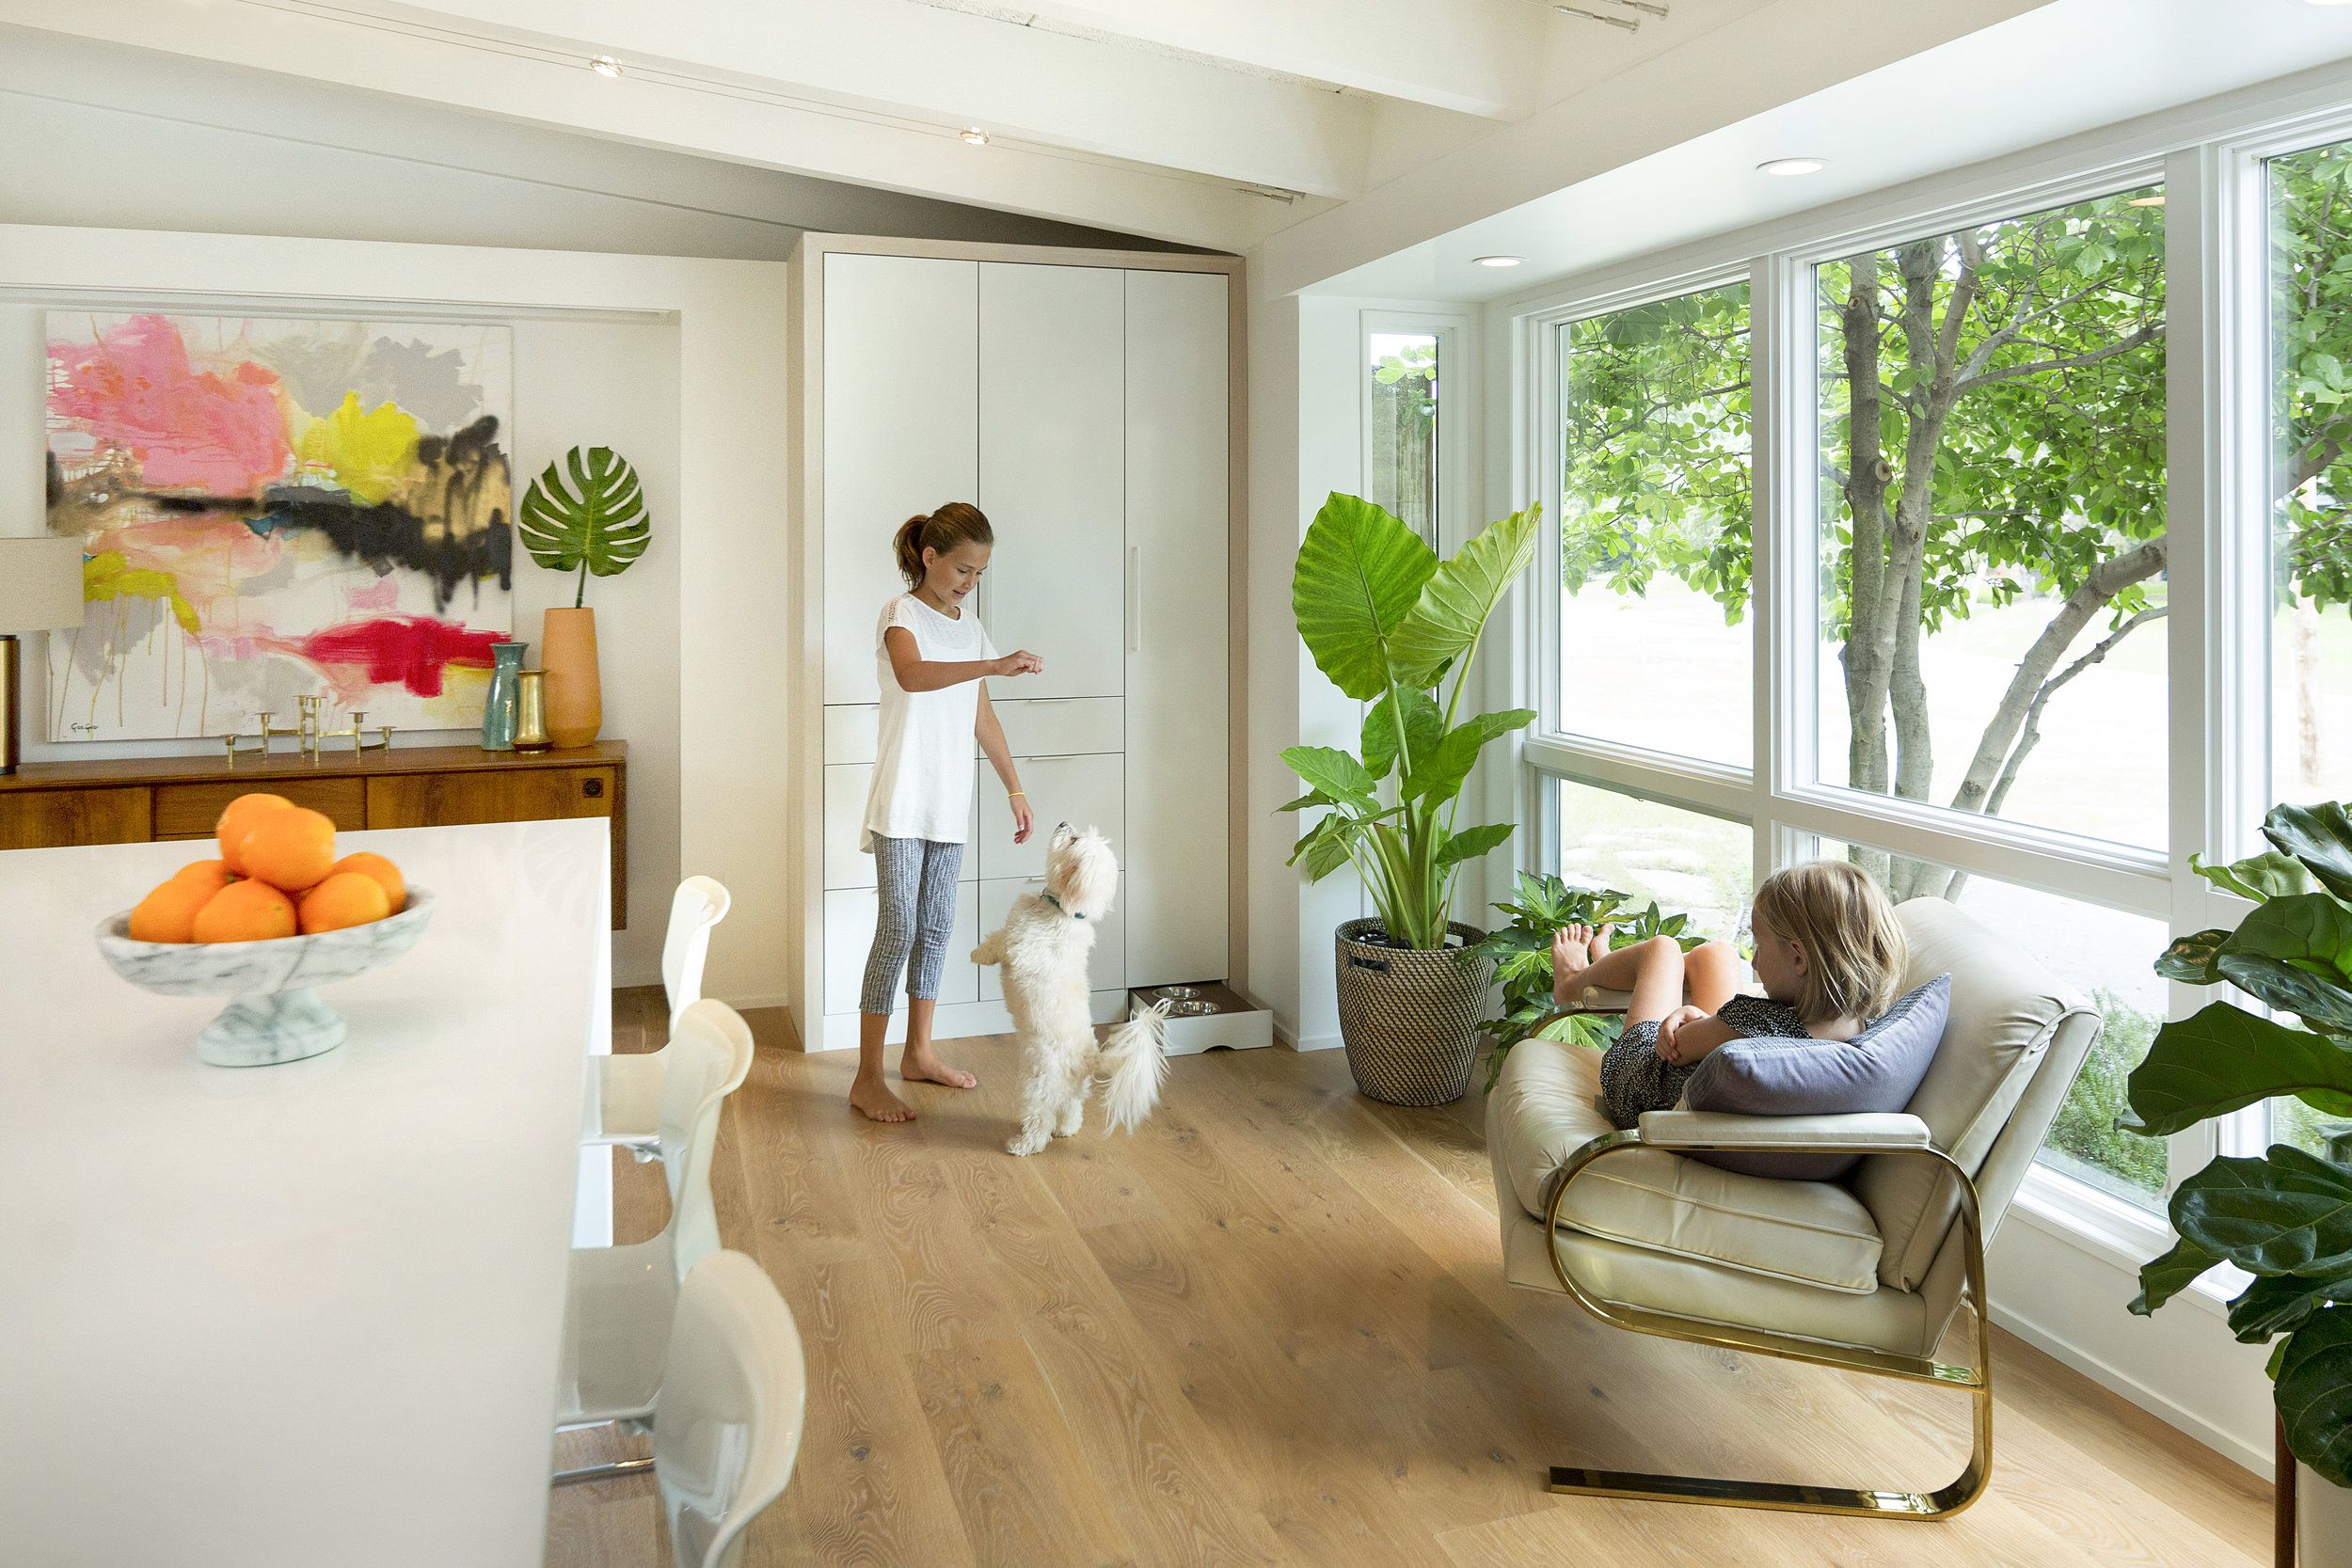 interior designer minneapolis i commercial residential design - Interior Designers In Minneapolis